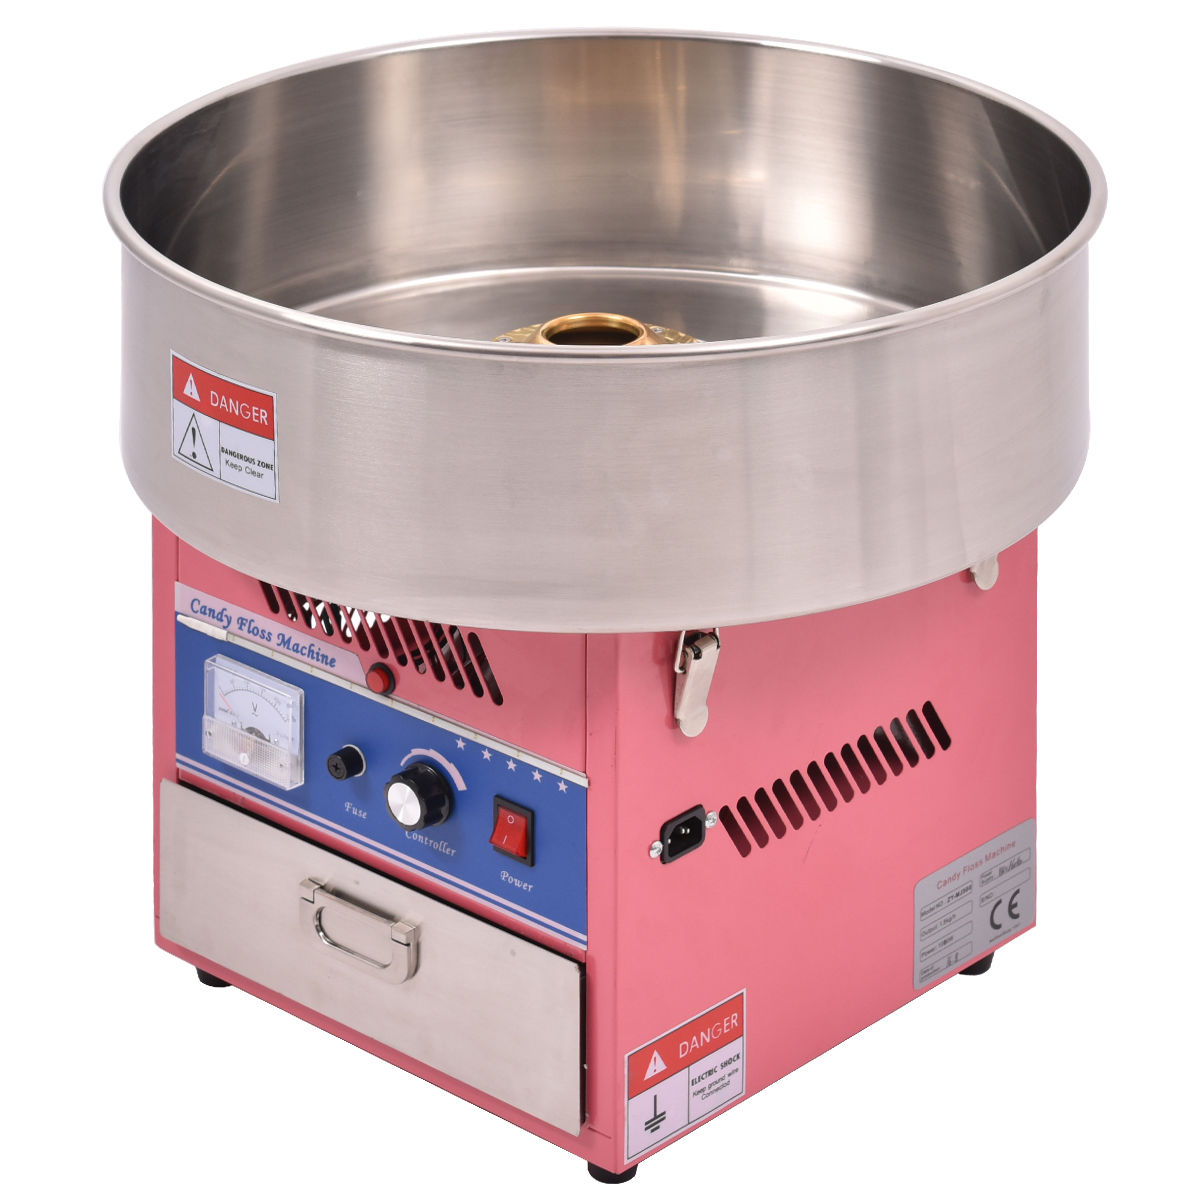 costway electric cotton candy machine floss maker commercial carnival party pink - Cotton Candy Machines